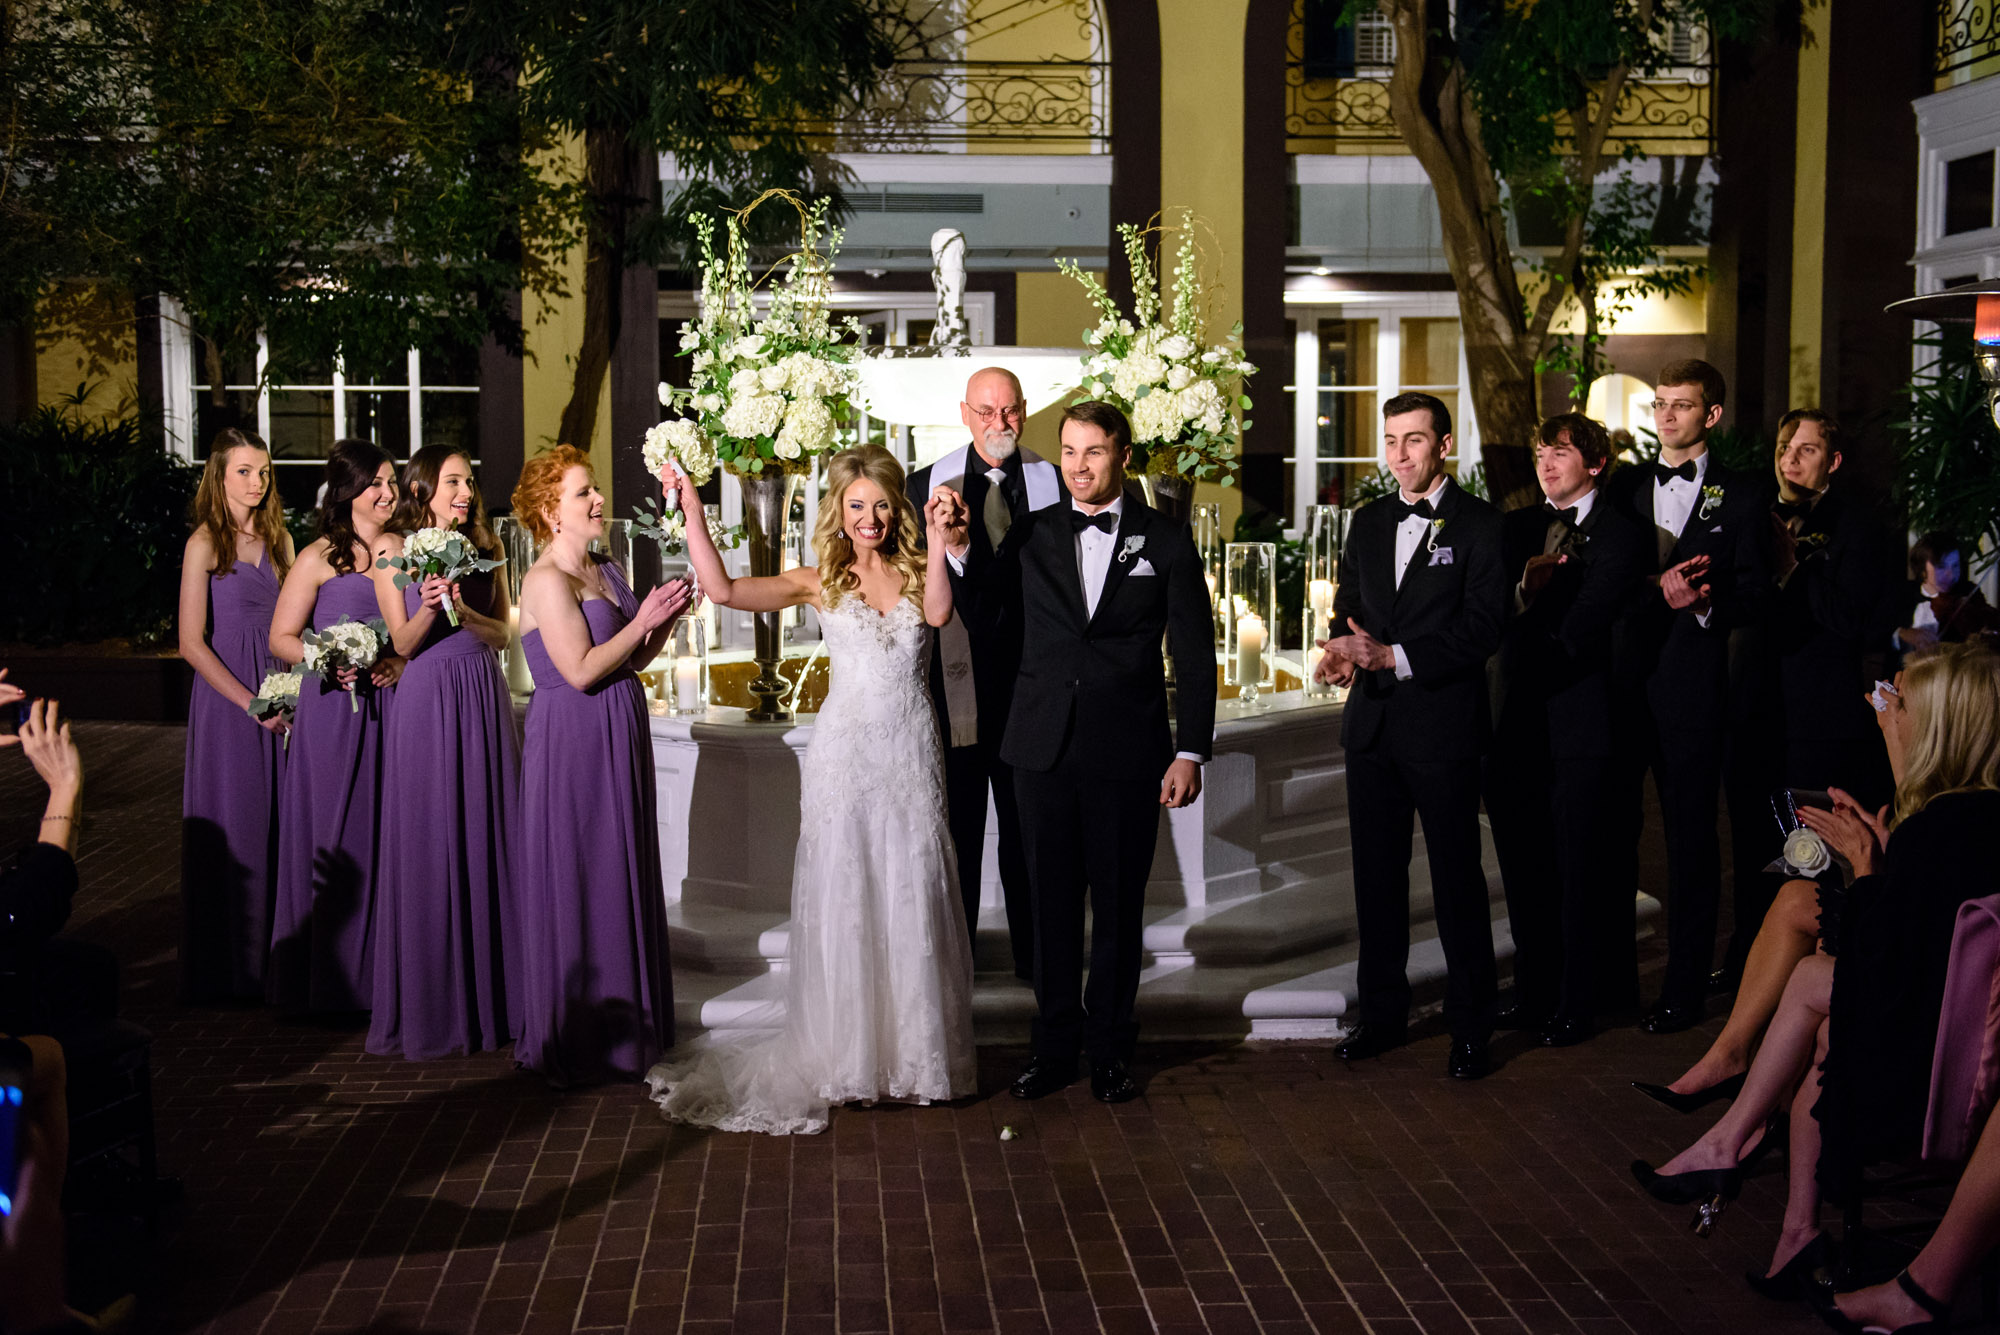 Just married at New Orleans' Hotel Mazarin